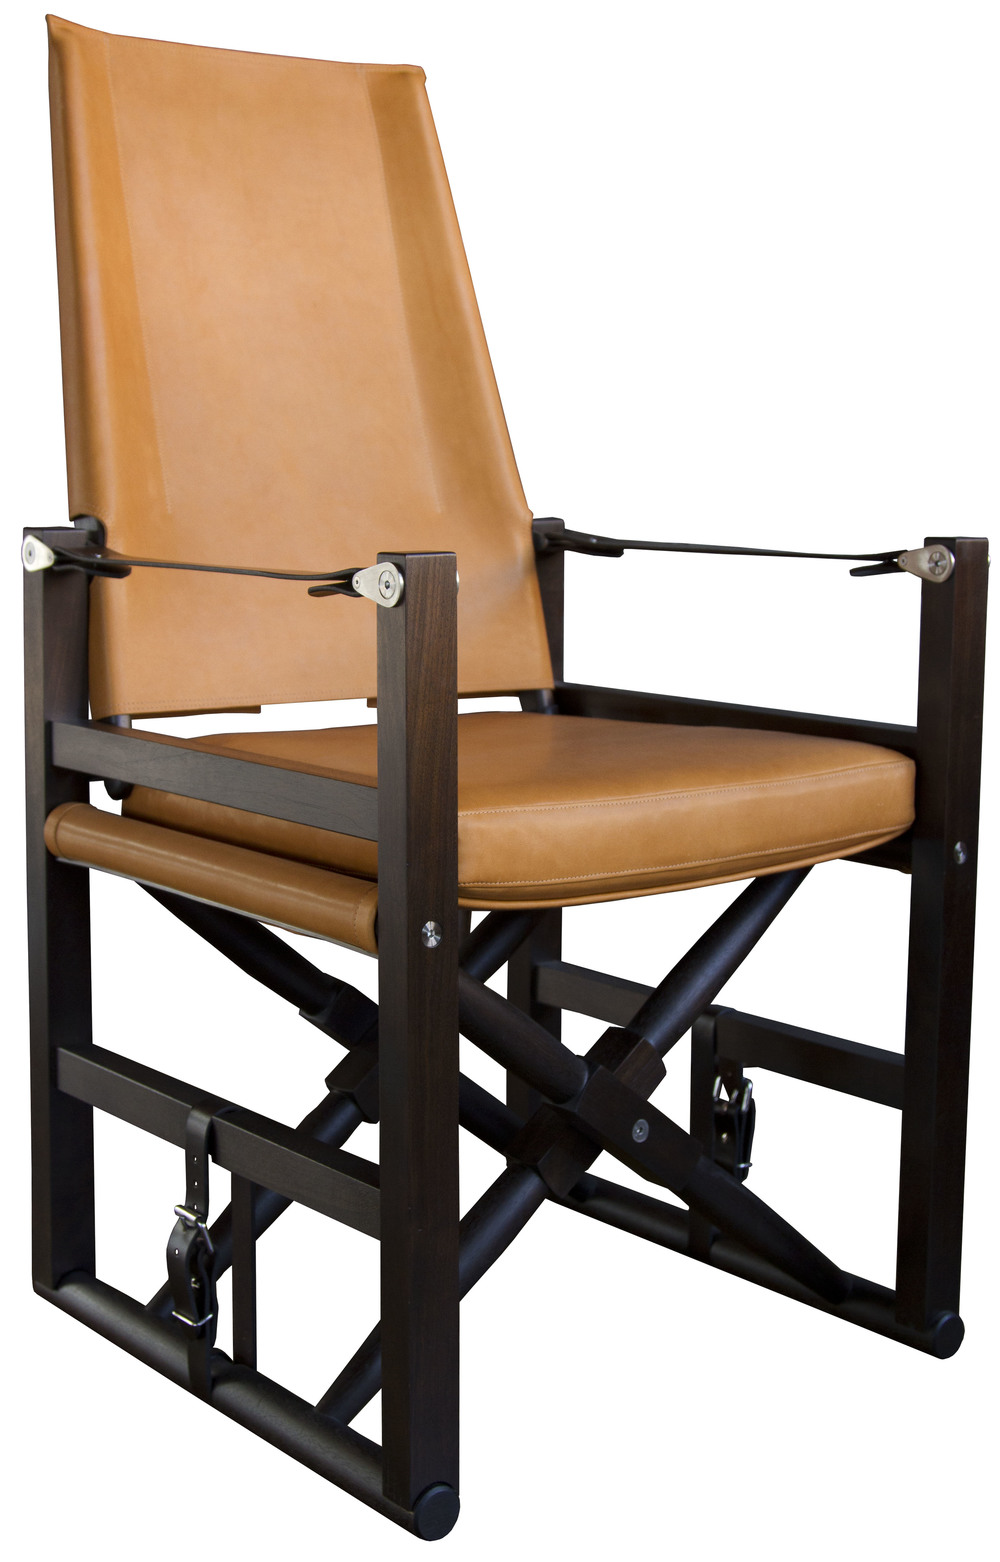 Cabourn Sail Chair - folding